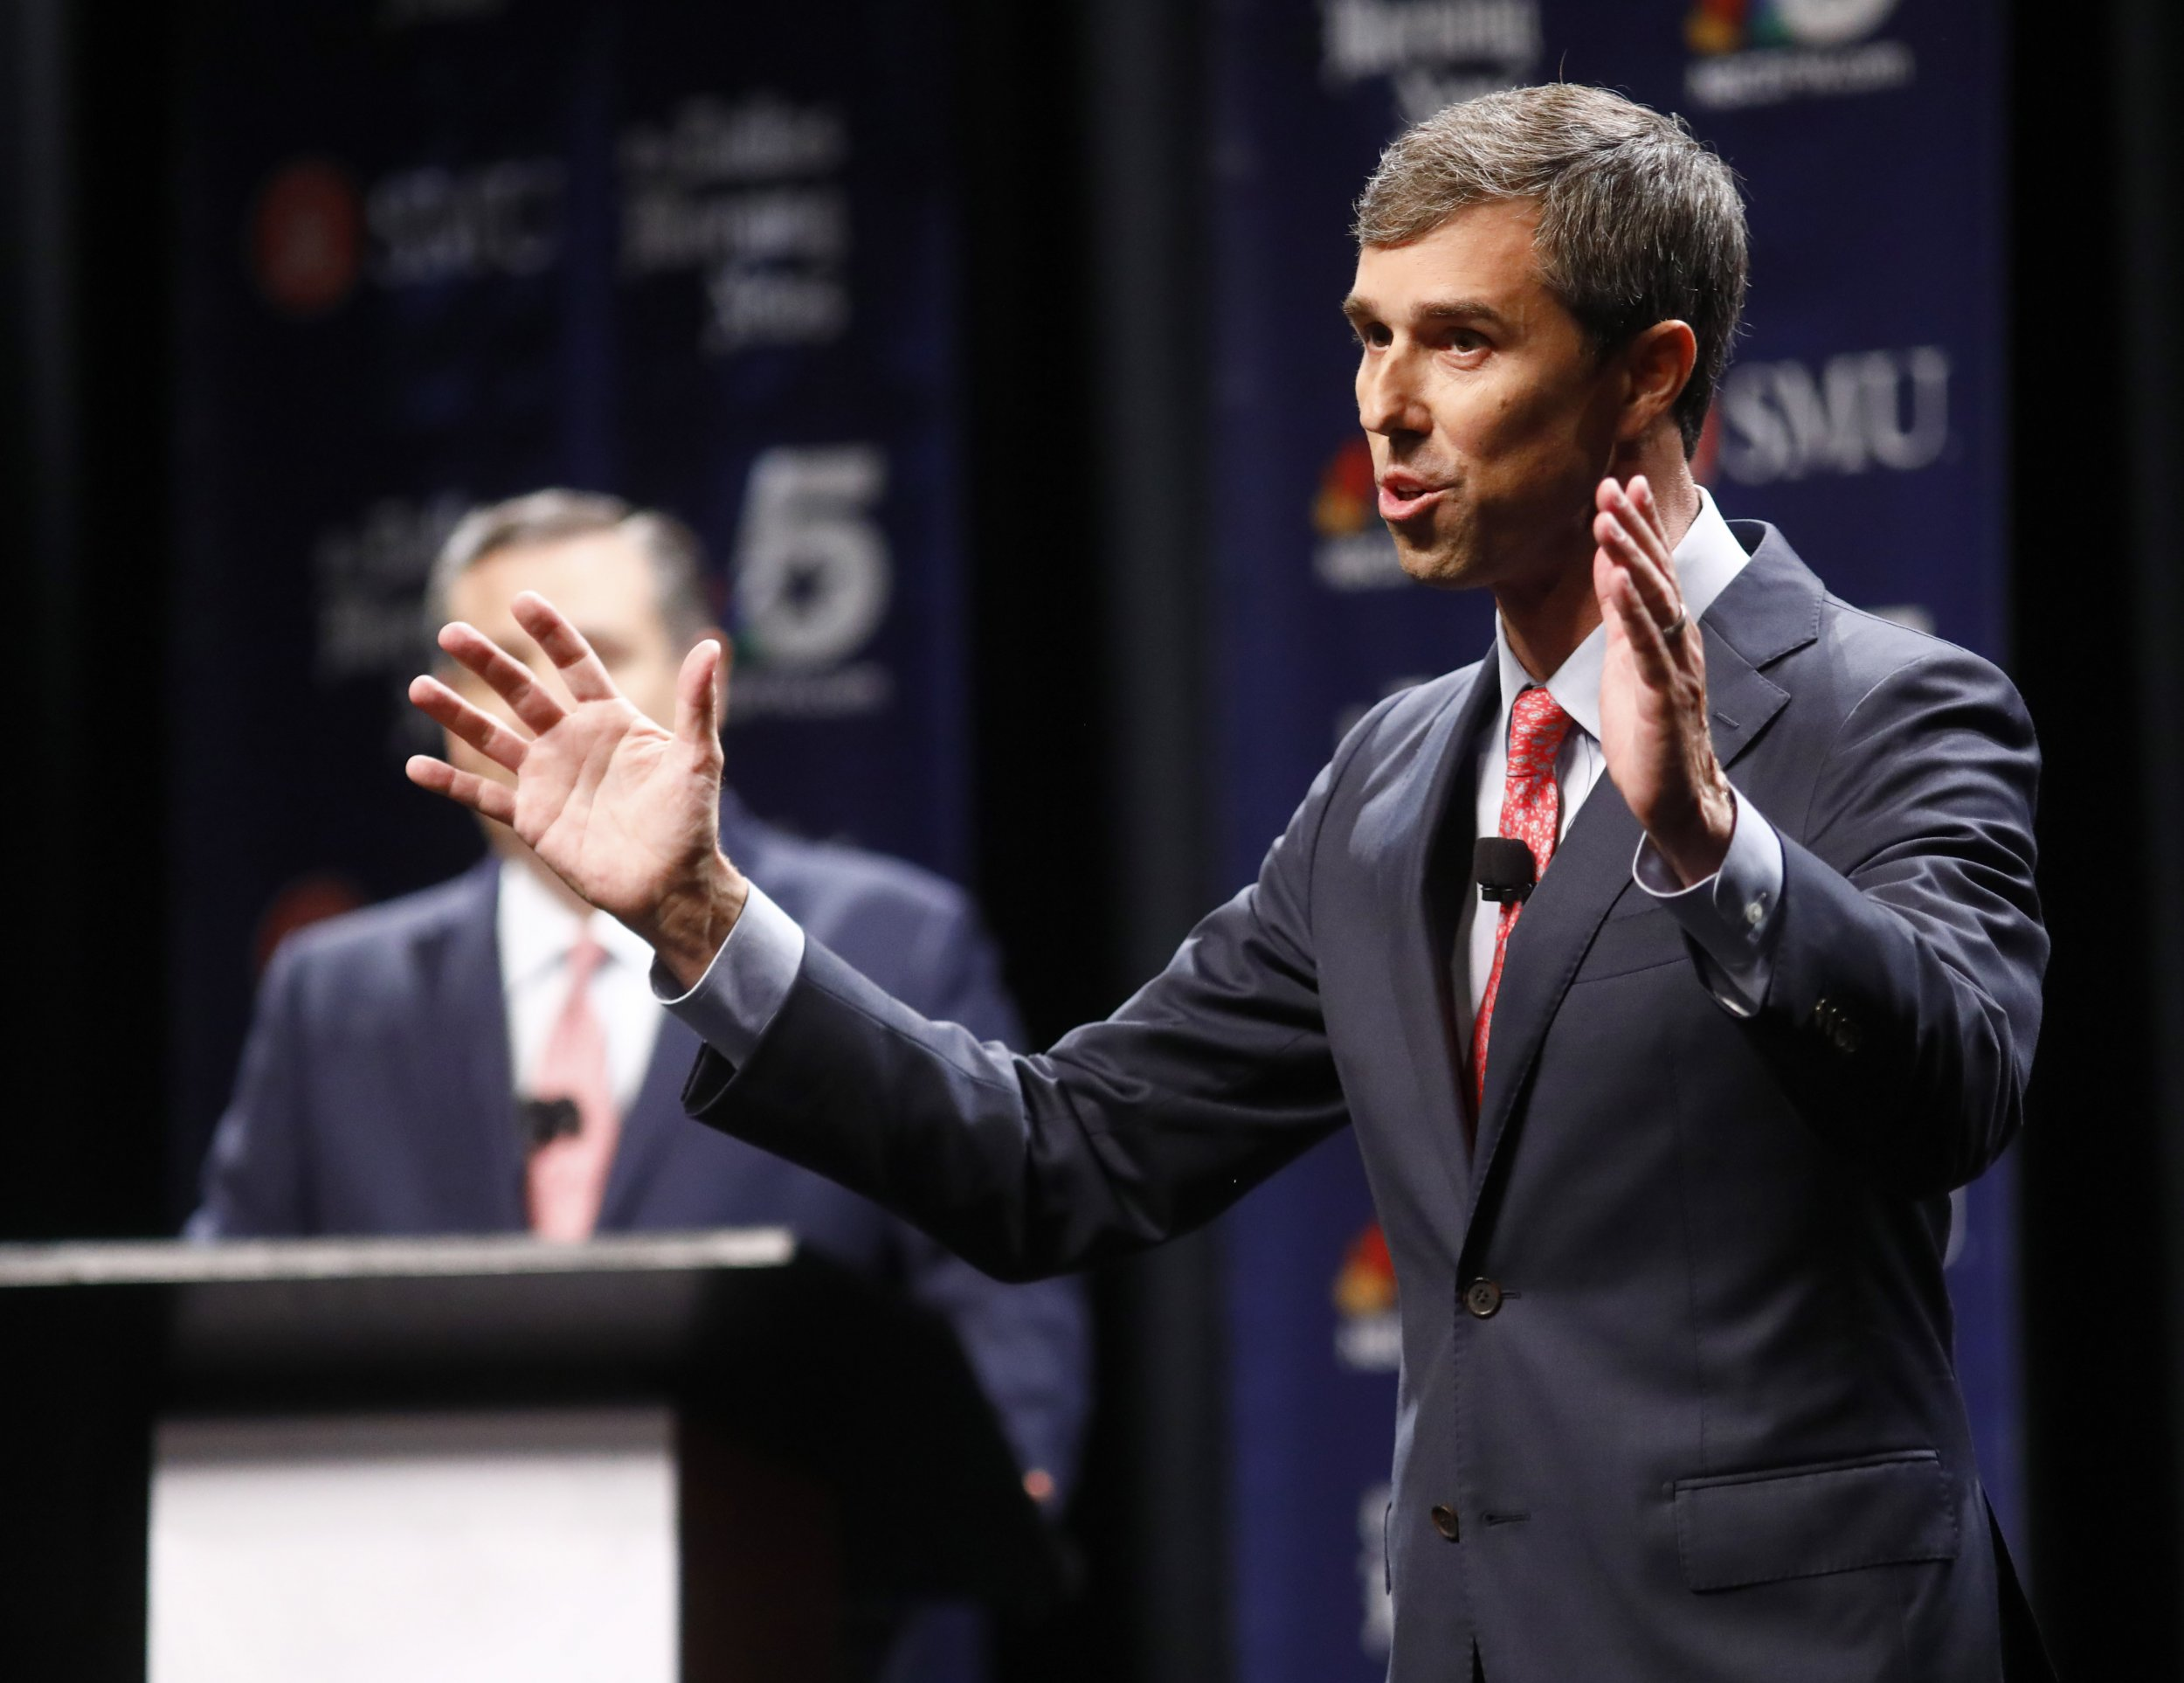 Beto O'Rourke wins support of Houston Chronicle, paper that once endorsed Ted Cruz but now calls him 'repellent'